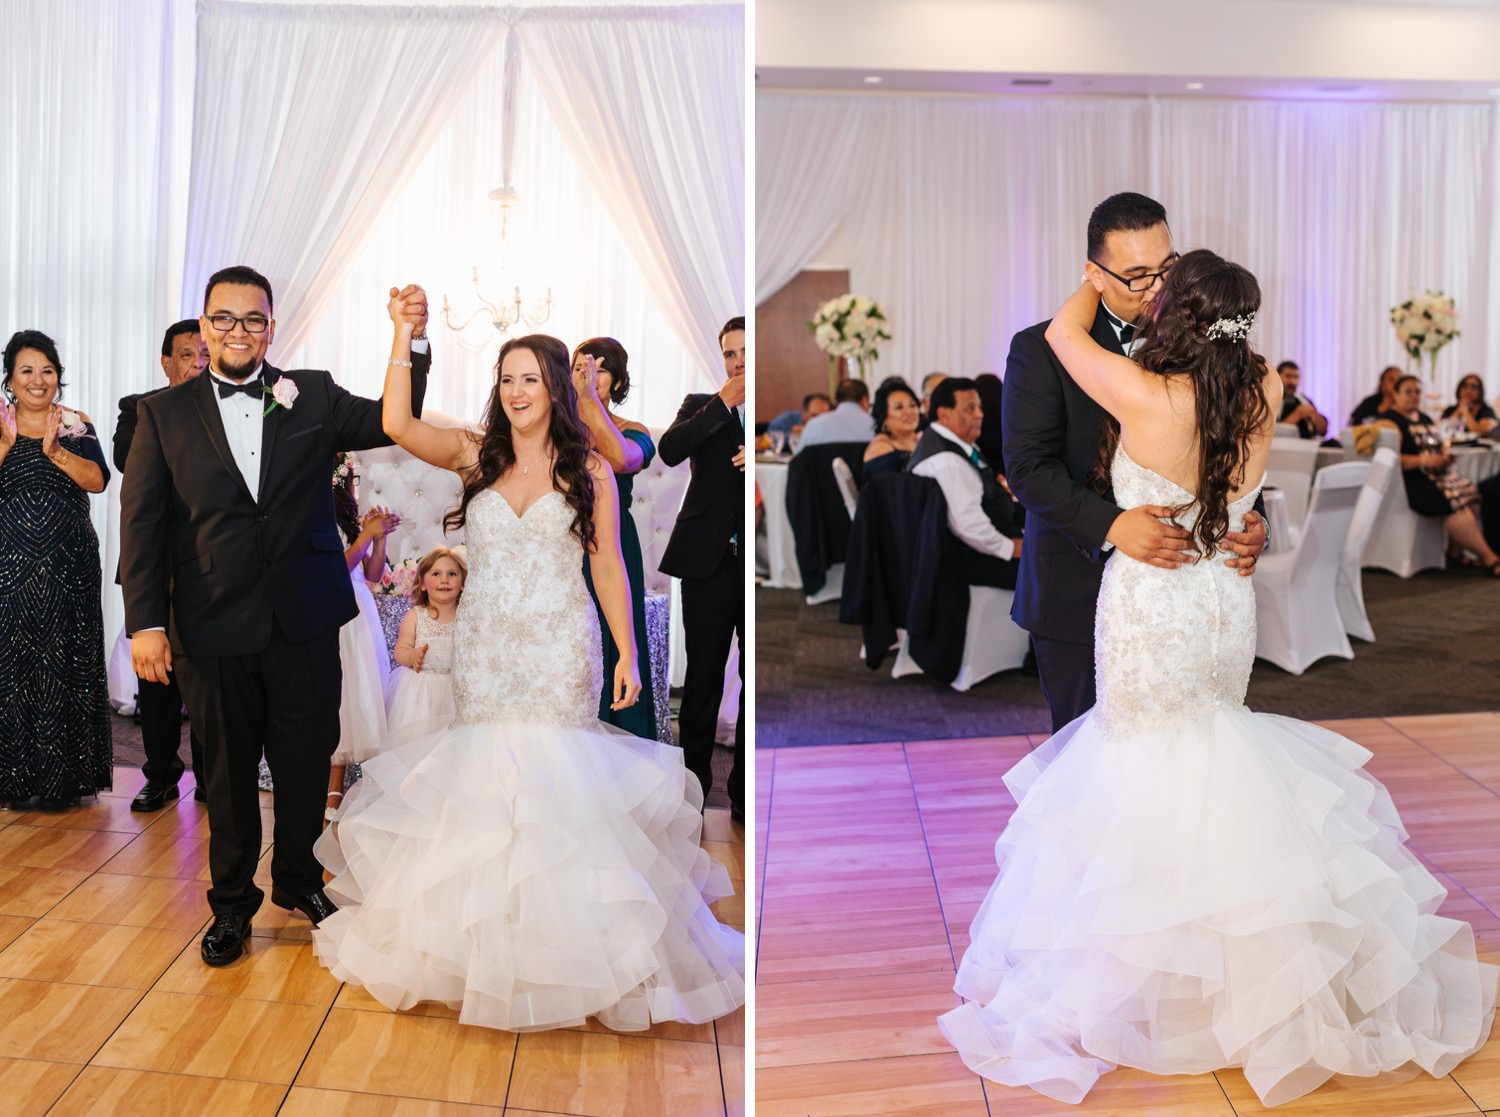 Bride and Groom's First Dance - https://brittneyhannonphotography.com